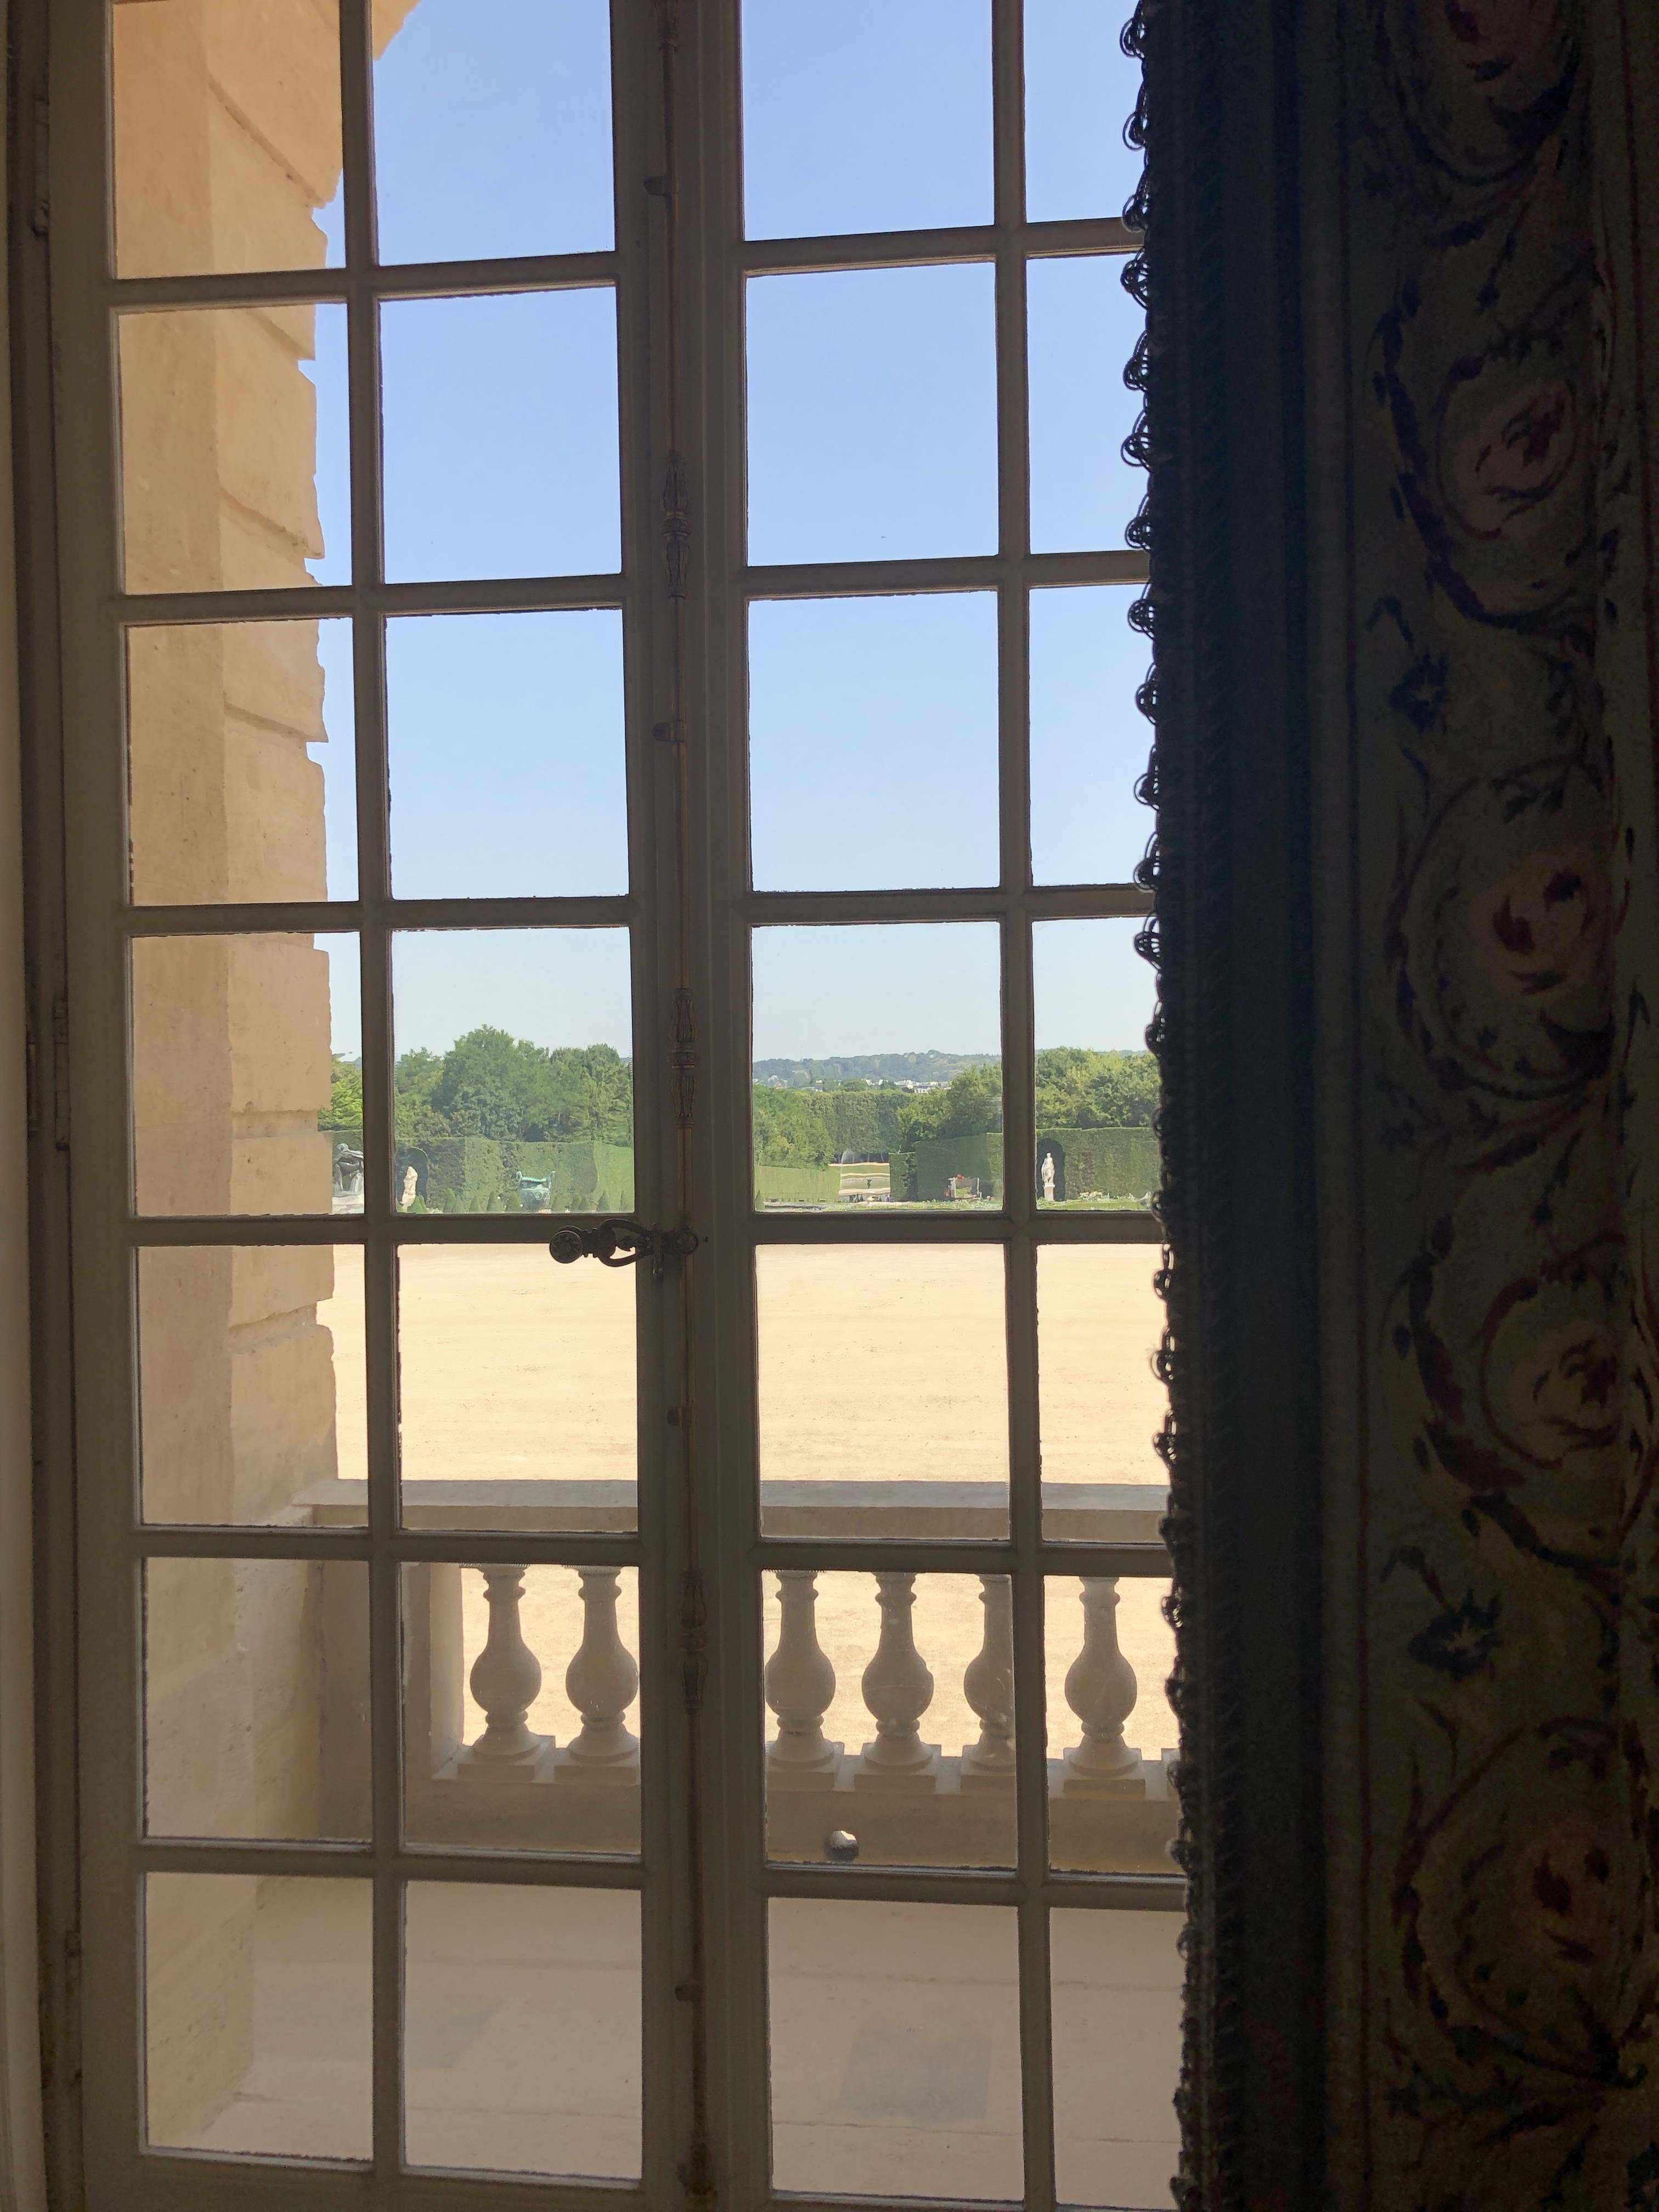 View through a window of sunny grounds at the palace of versailles